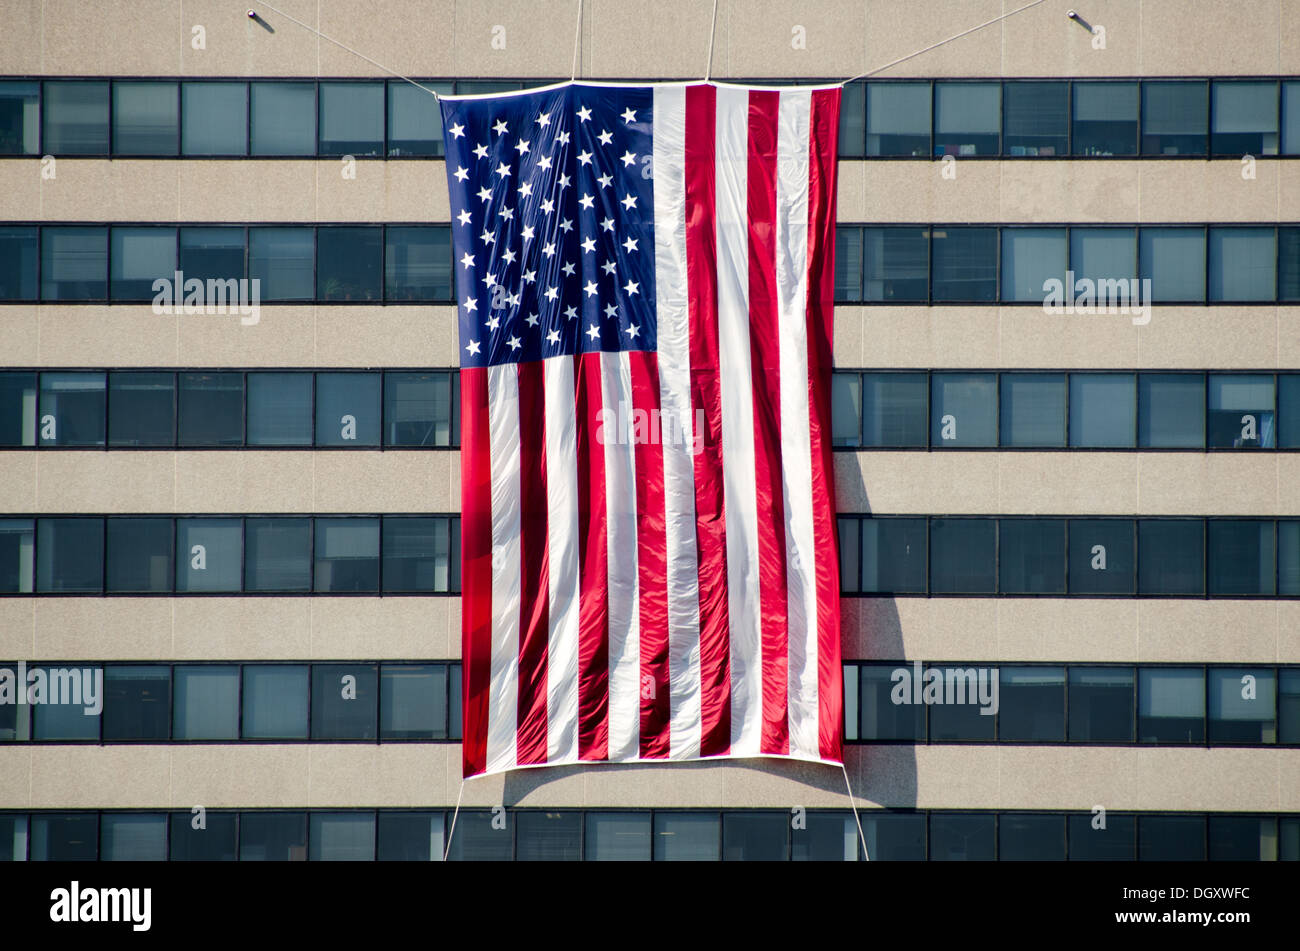 Defense contractors and other business based in Rosslyn, Virginia, drape large flags on the outside of their buildings for the anniversary of the 9/11 terrorist attacks. The Pentagon, which was the target of one of the attacks, is nearby. - Stock Image